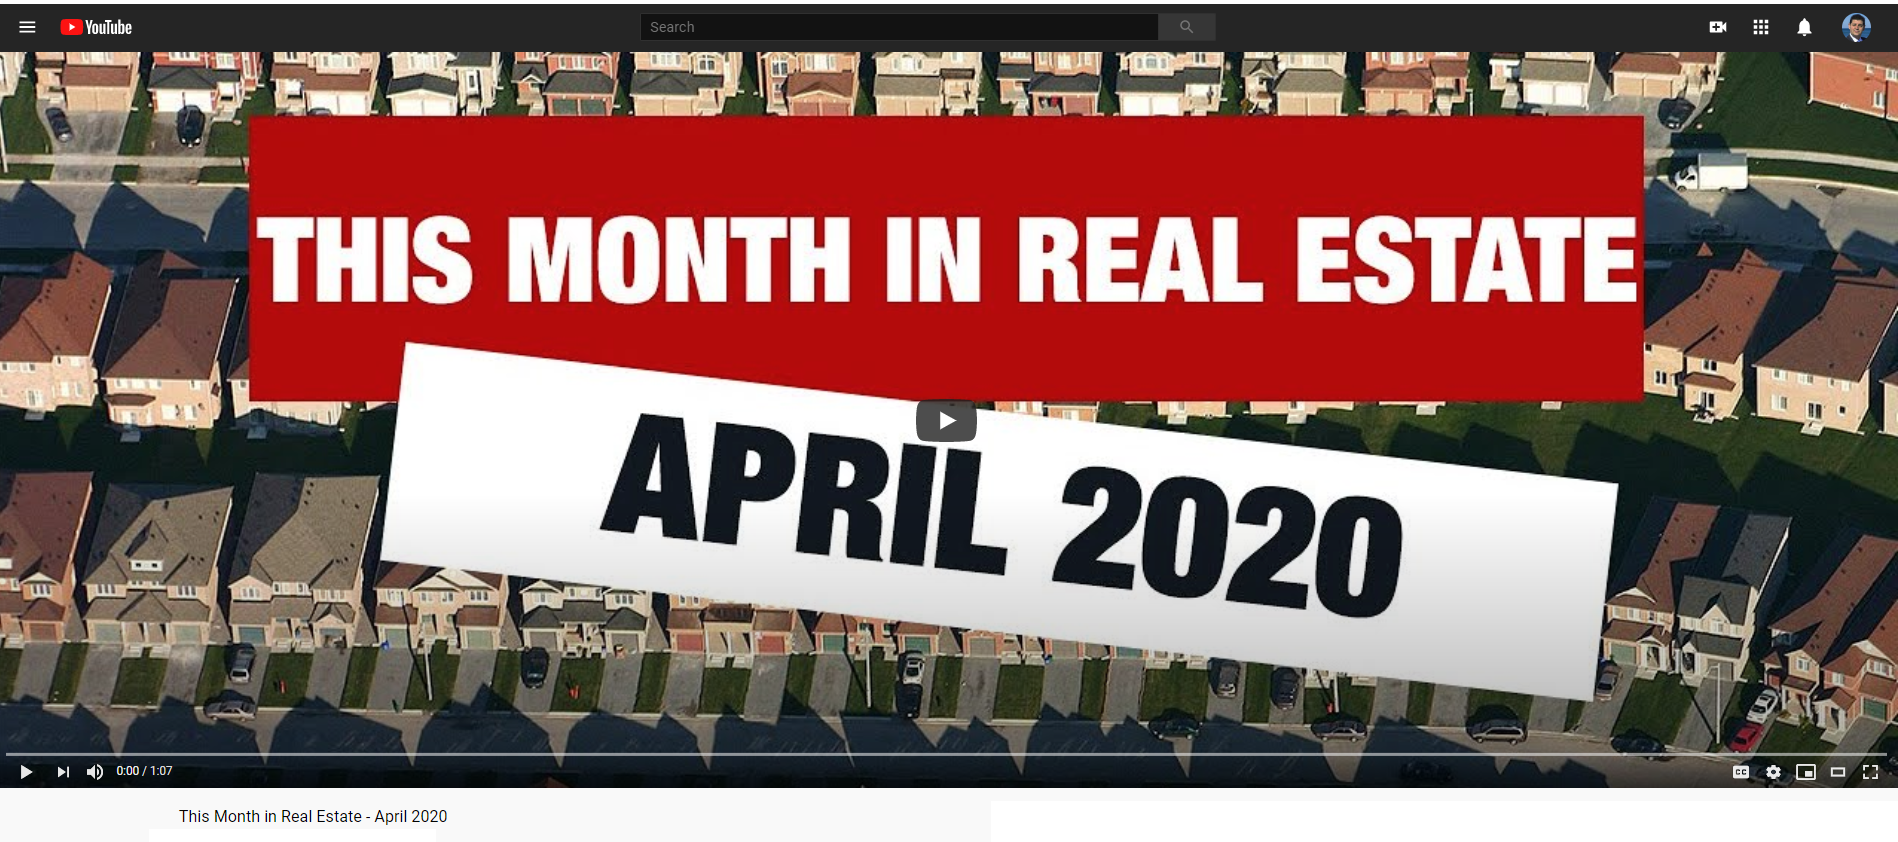 Keller Williams Realty This month in real estate April 2020 for Jean-Luc Andriot blog 041420